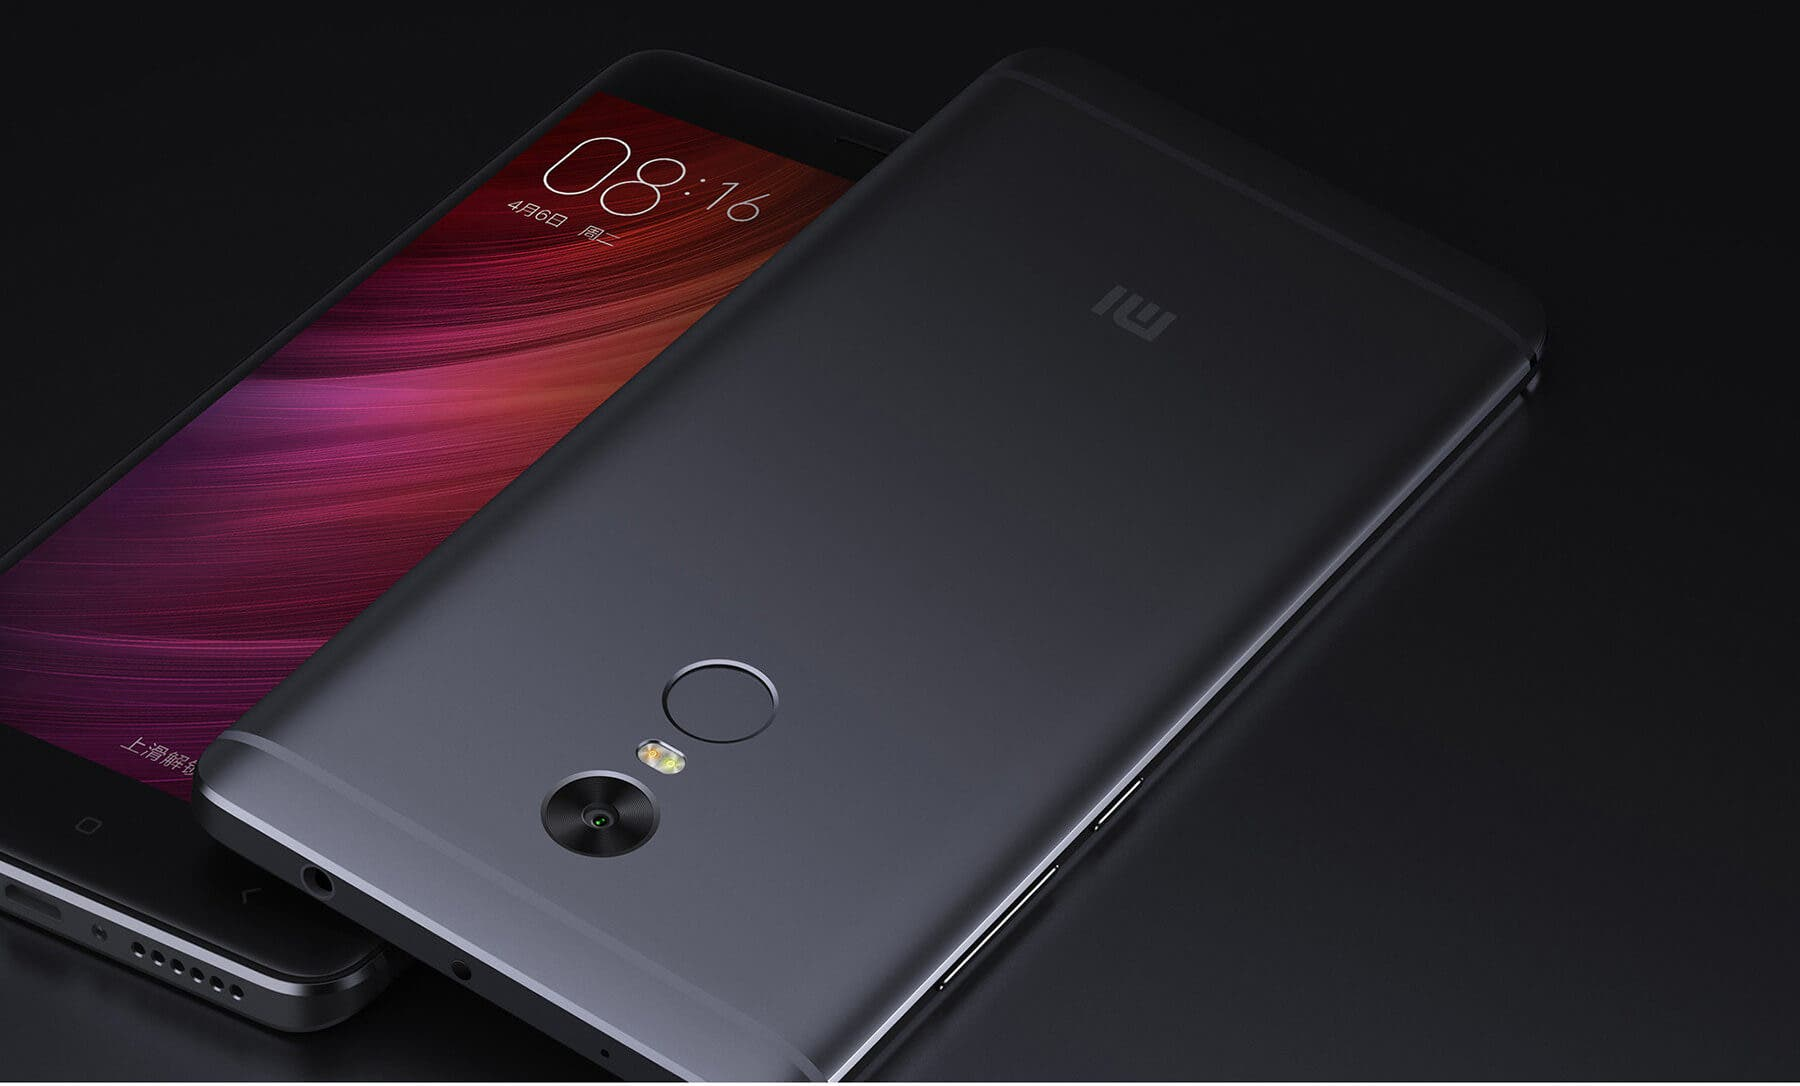 Xiaomi Set To Launch Redmi Note 4 And Redmi 4x In Mexico: Xiaomi Enters North America, Launches Its Redmi Note 4 In